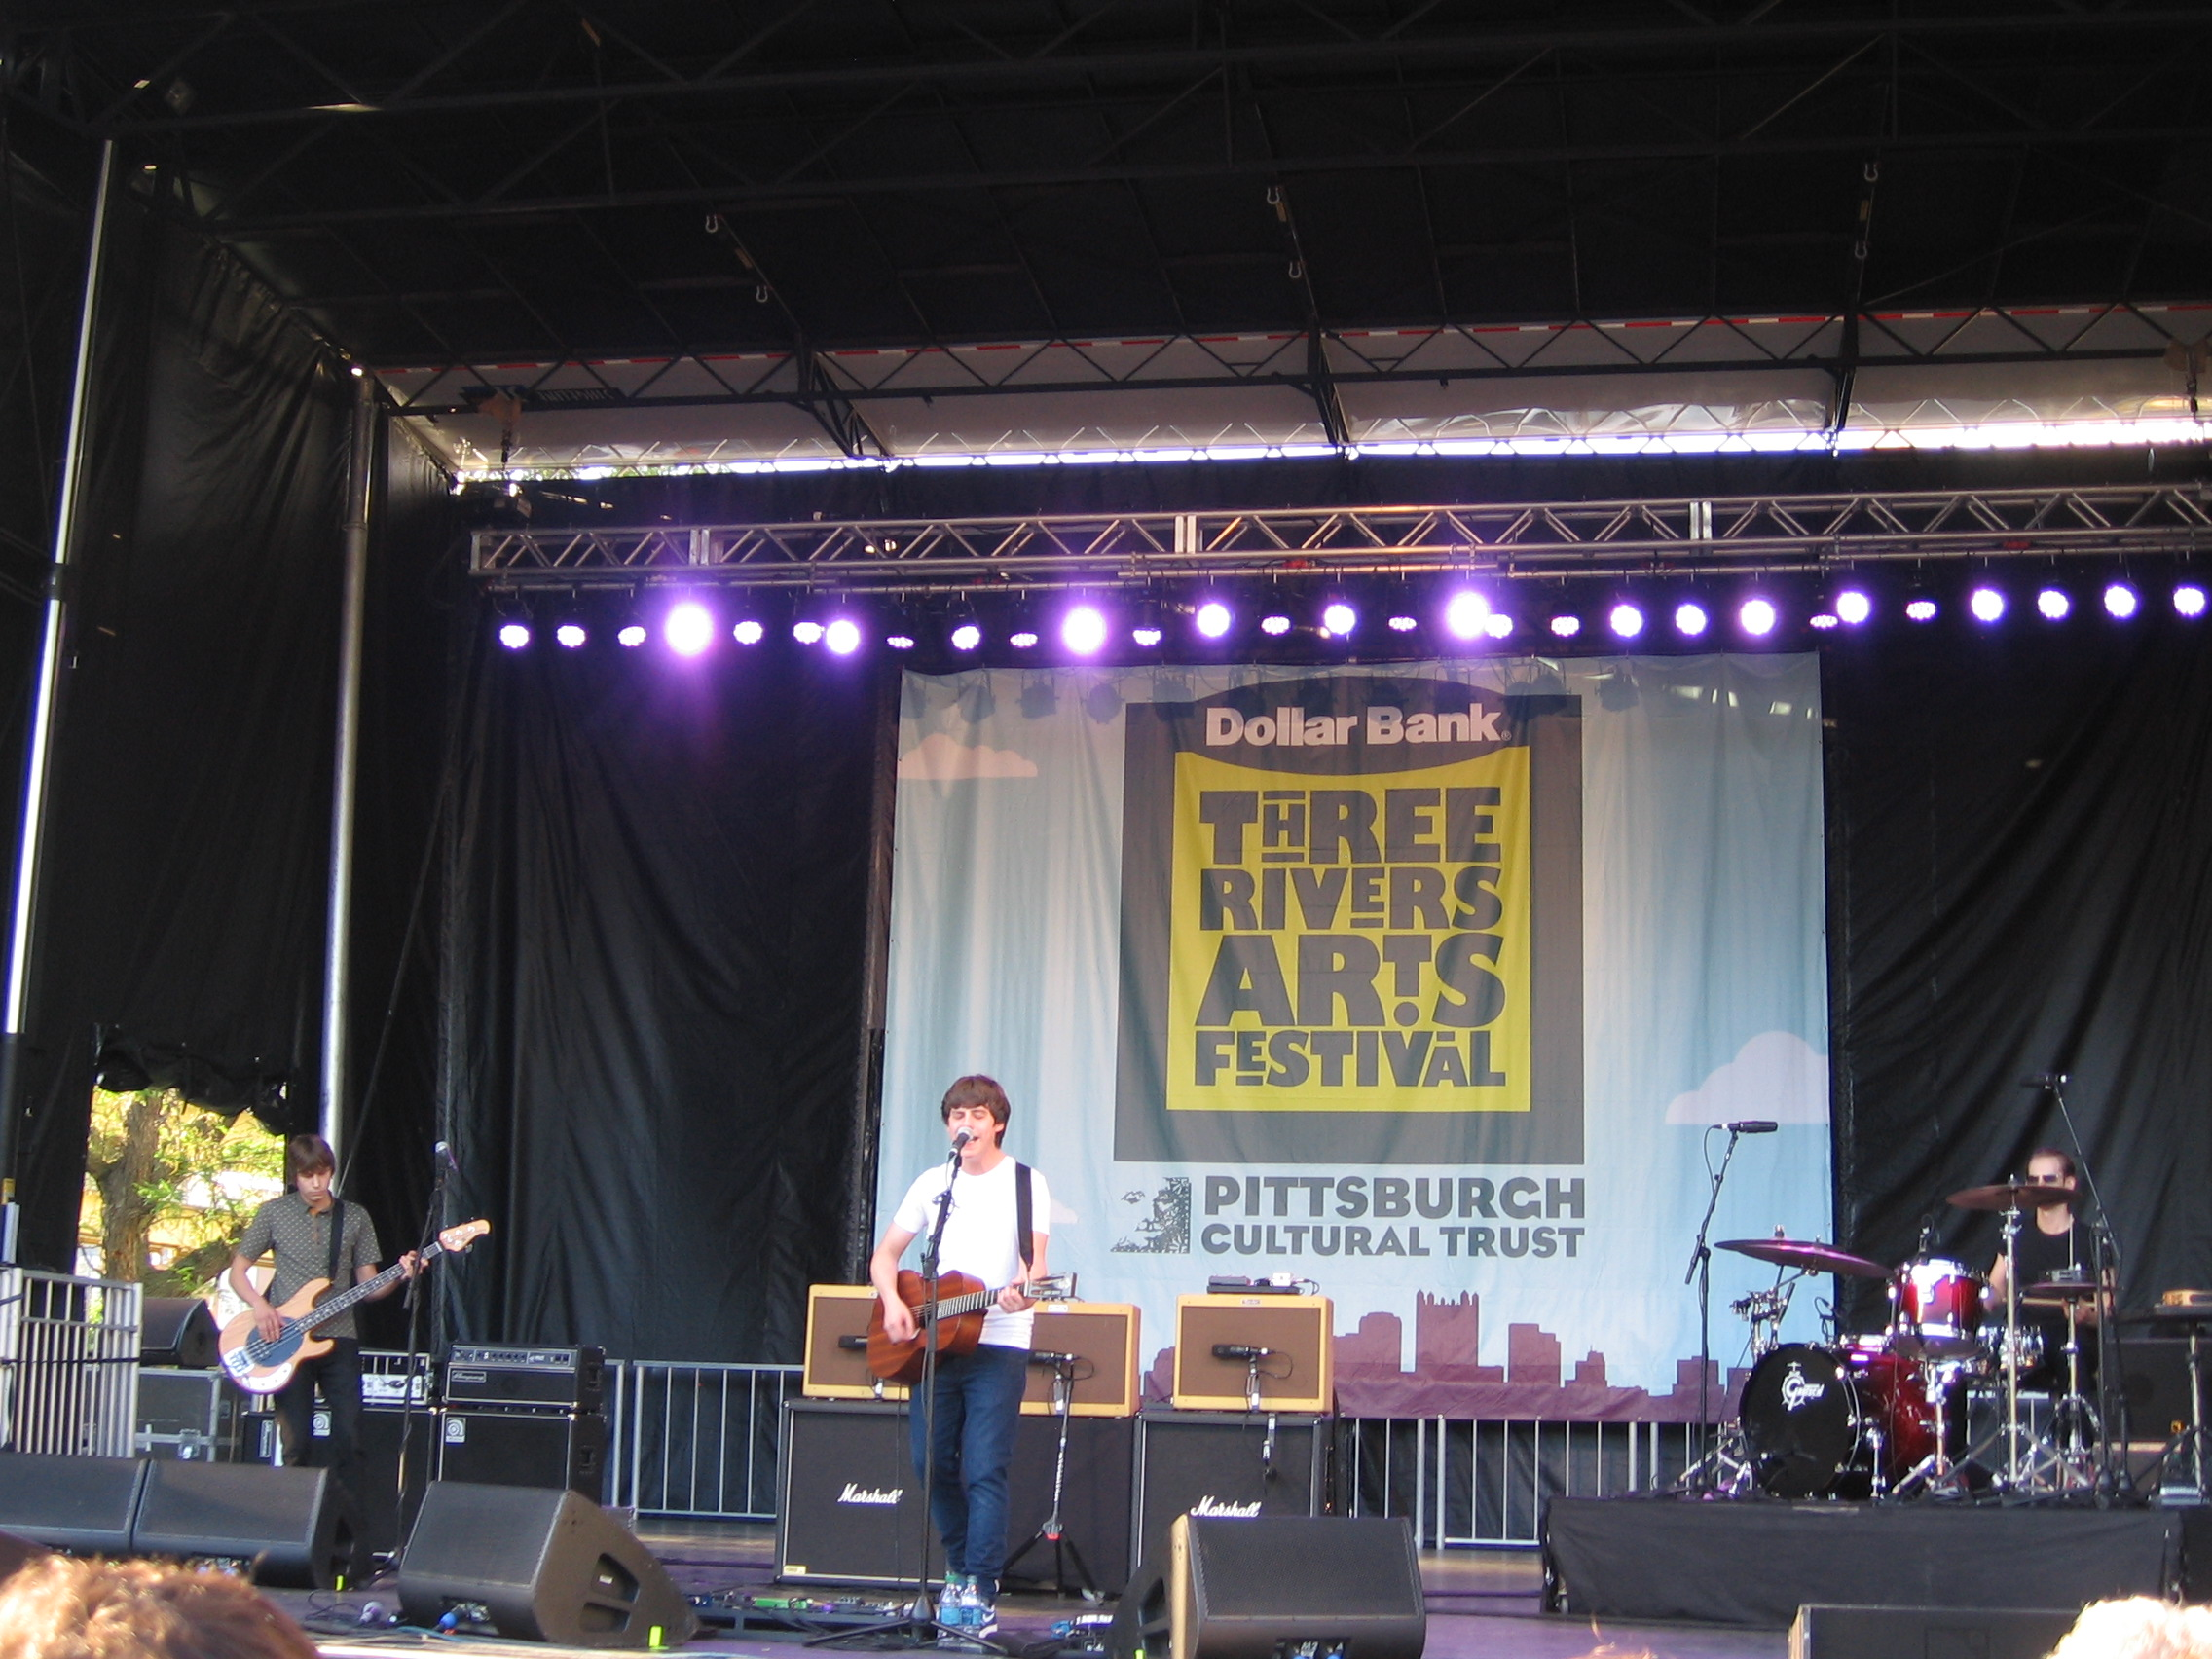 Jake Bugg and band rock out the Three Rivers Arts Festival.